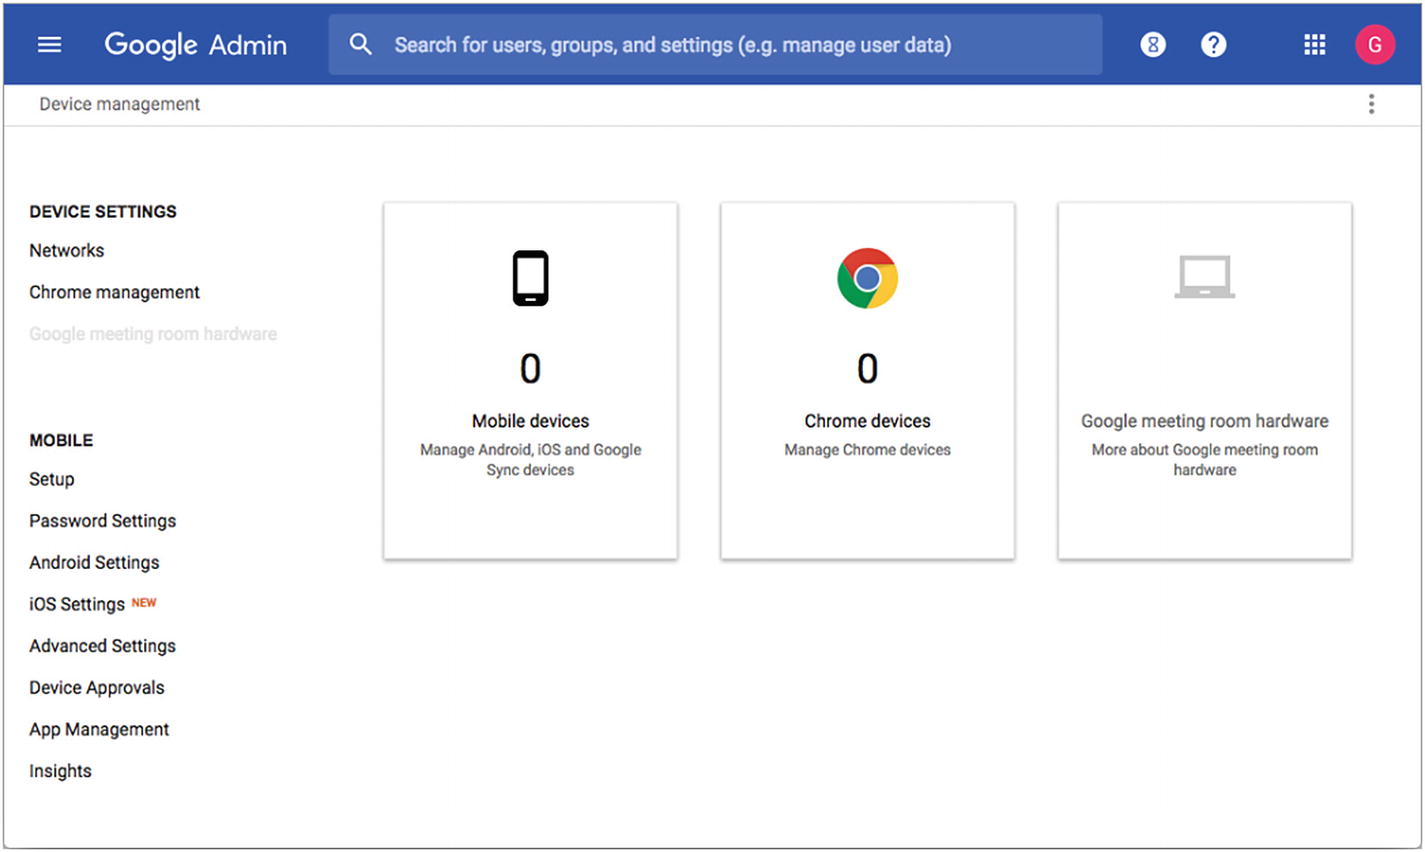 Configuring and Managing Chromebooks via Policy | SpringerLink